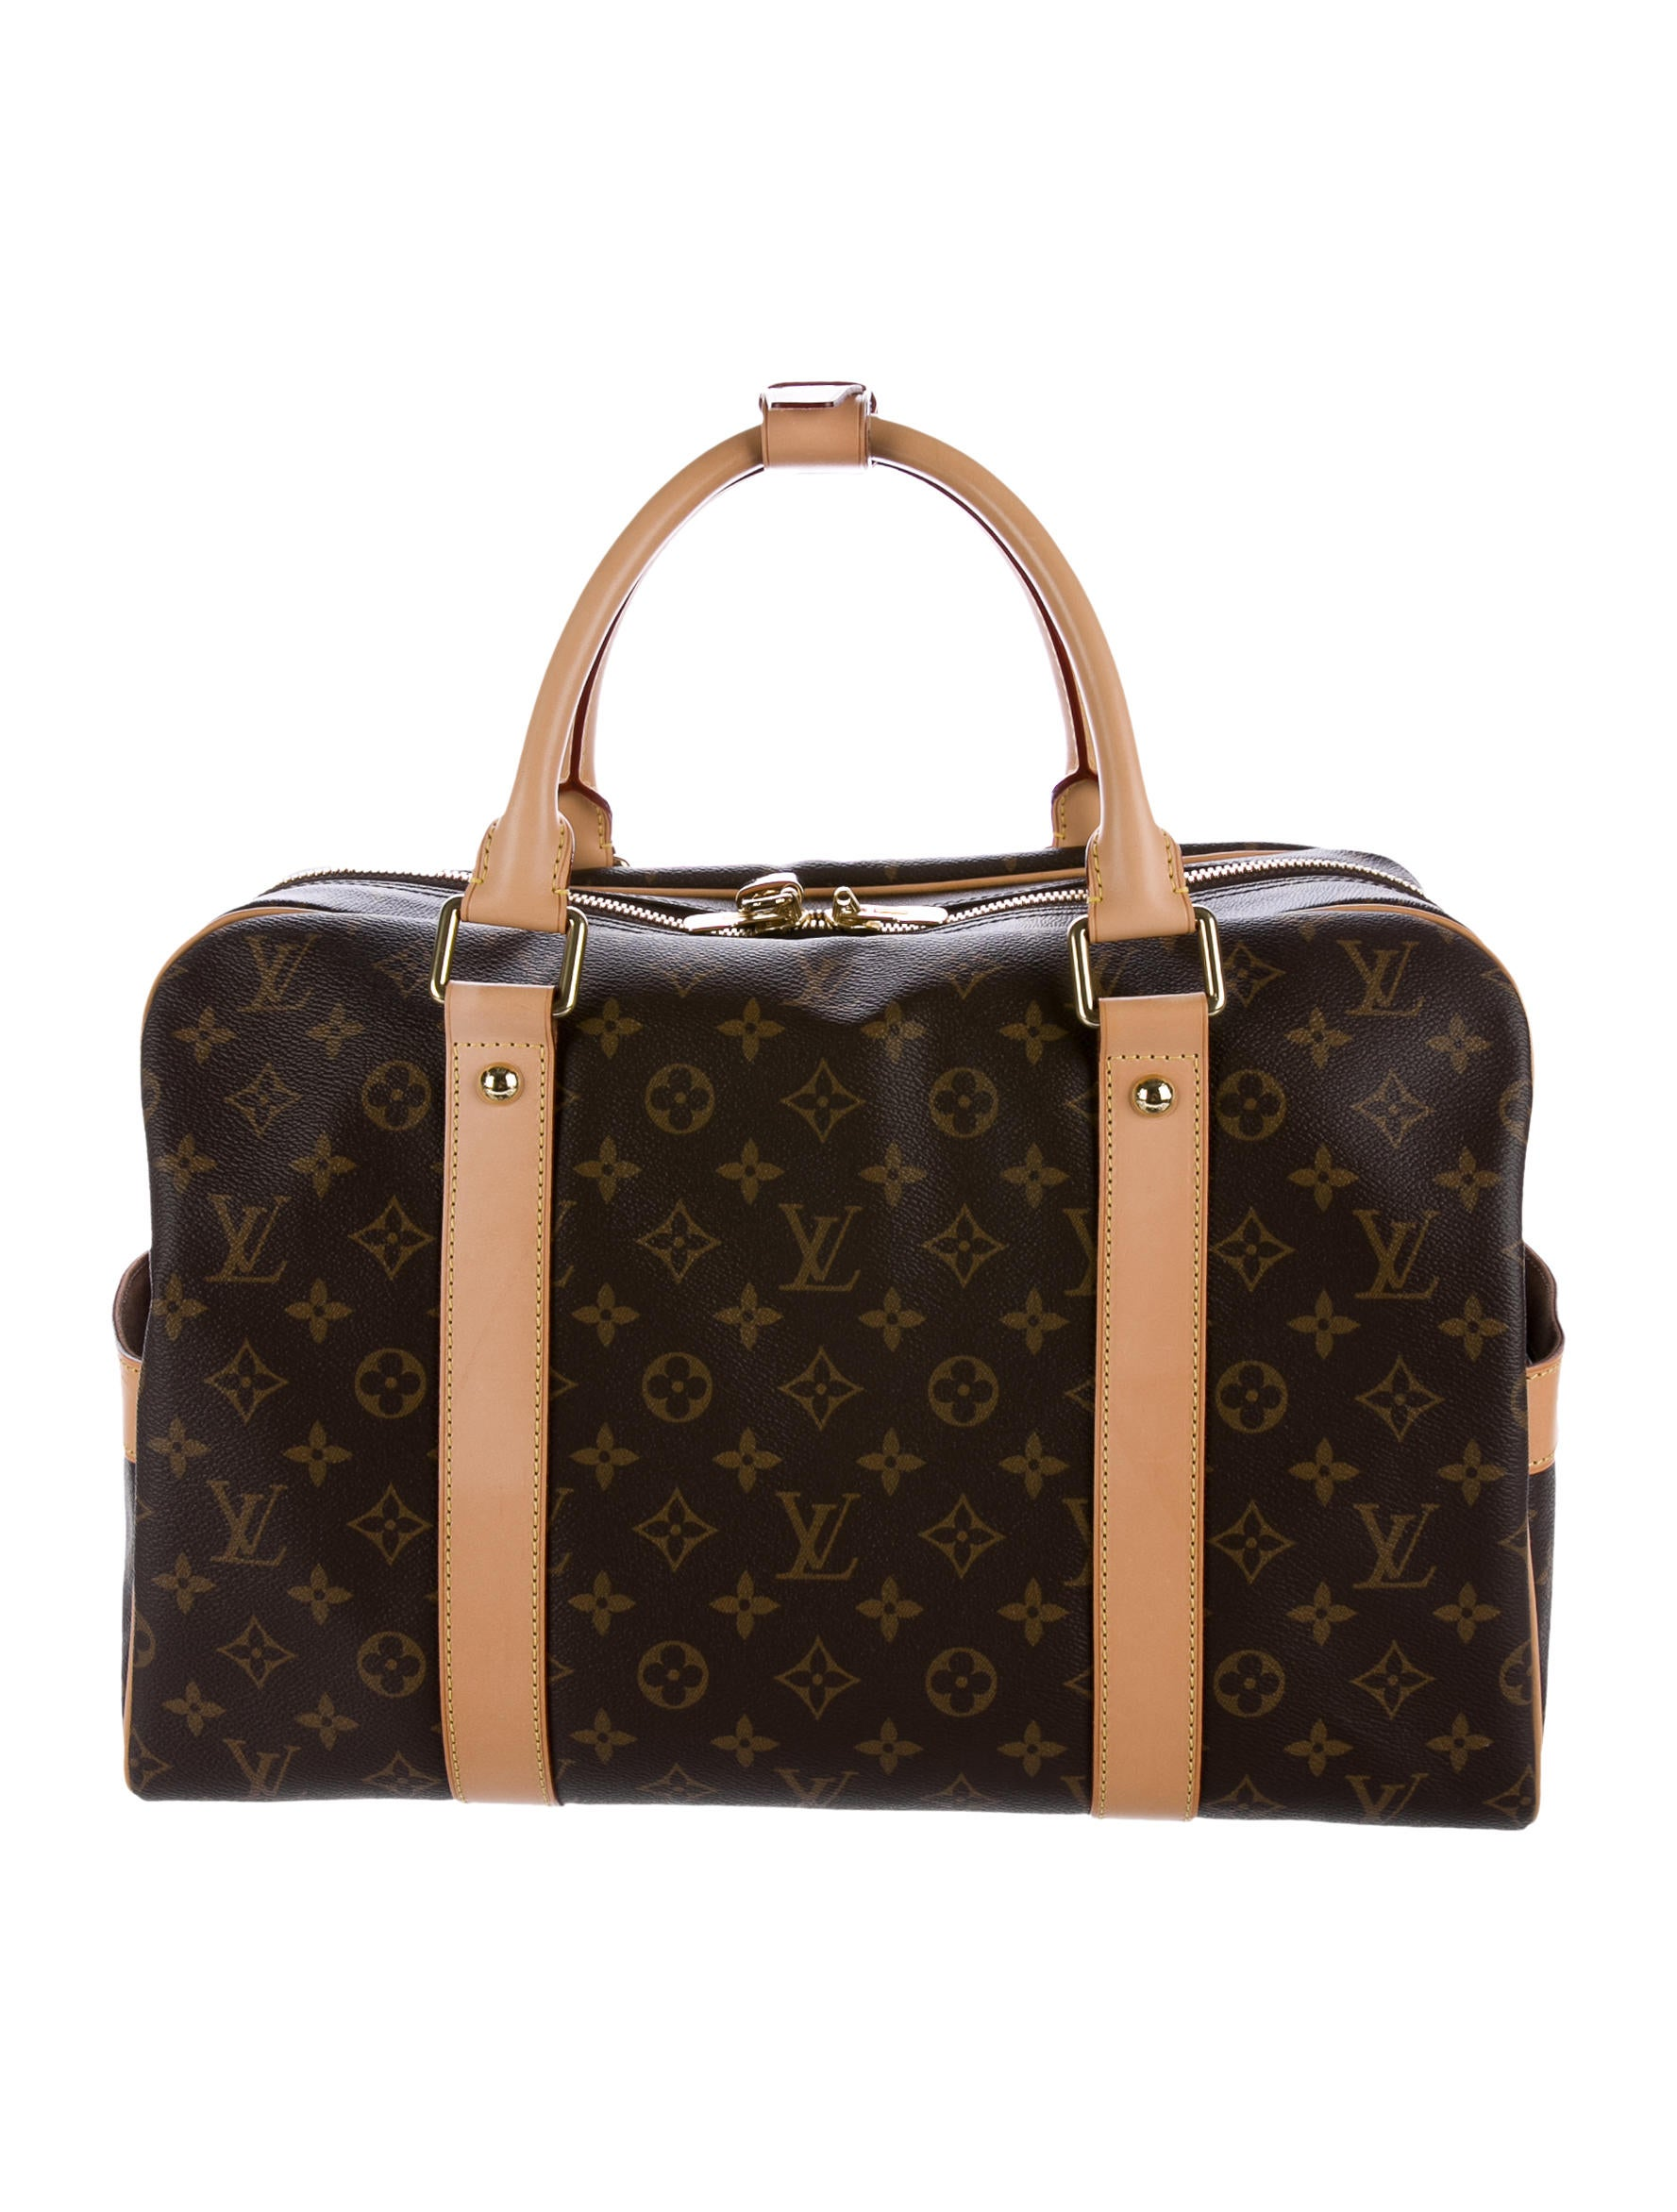 Louis vuitton 2015 monogram carryall bag bags for Louis vuitton miroir bags